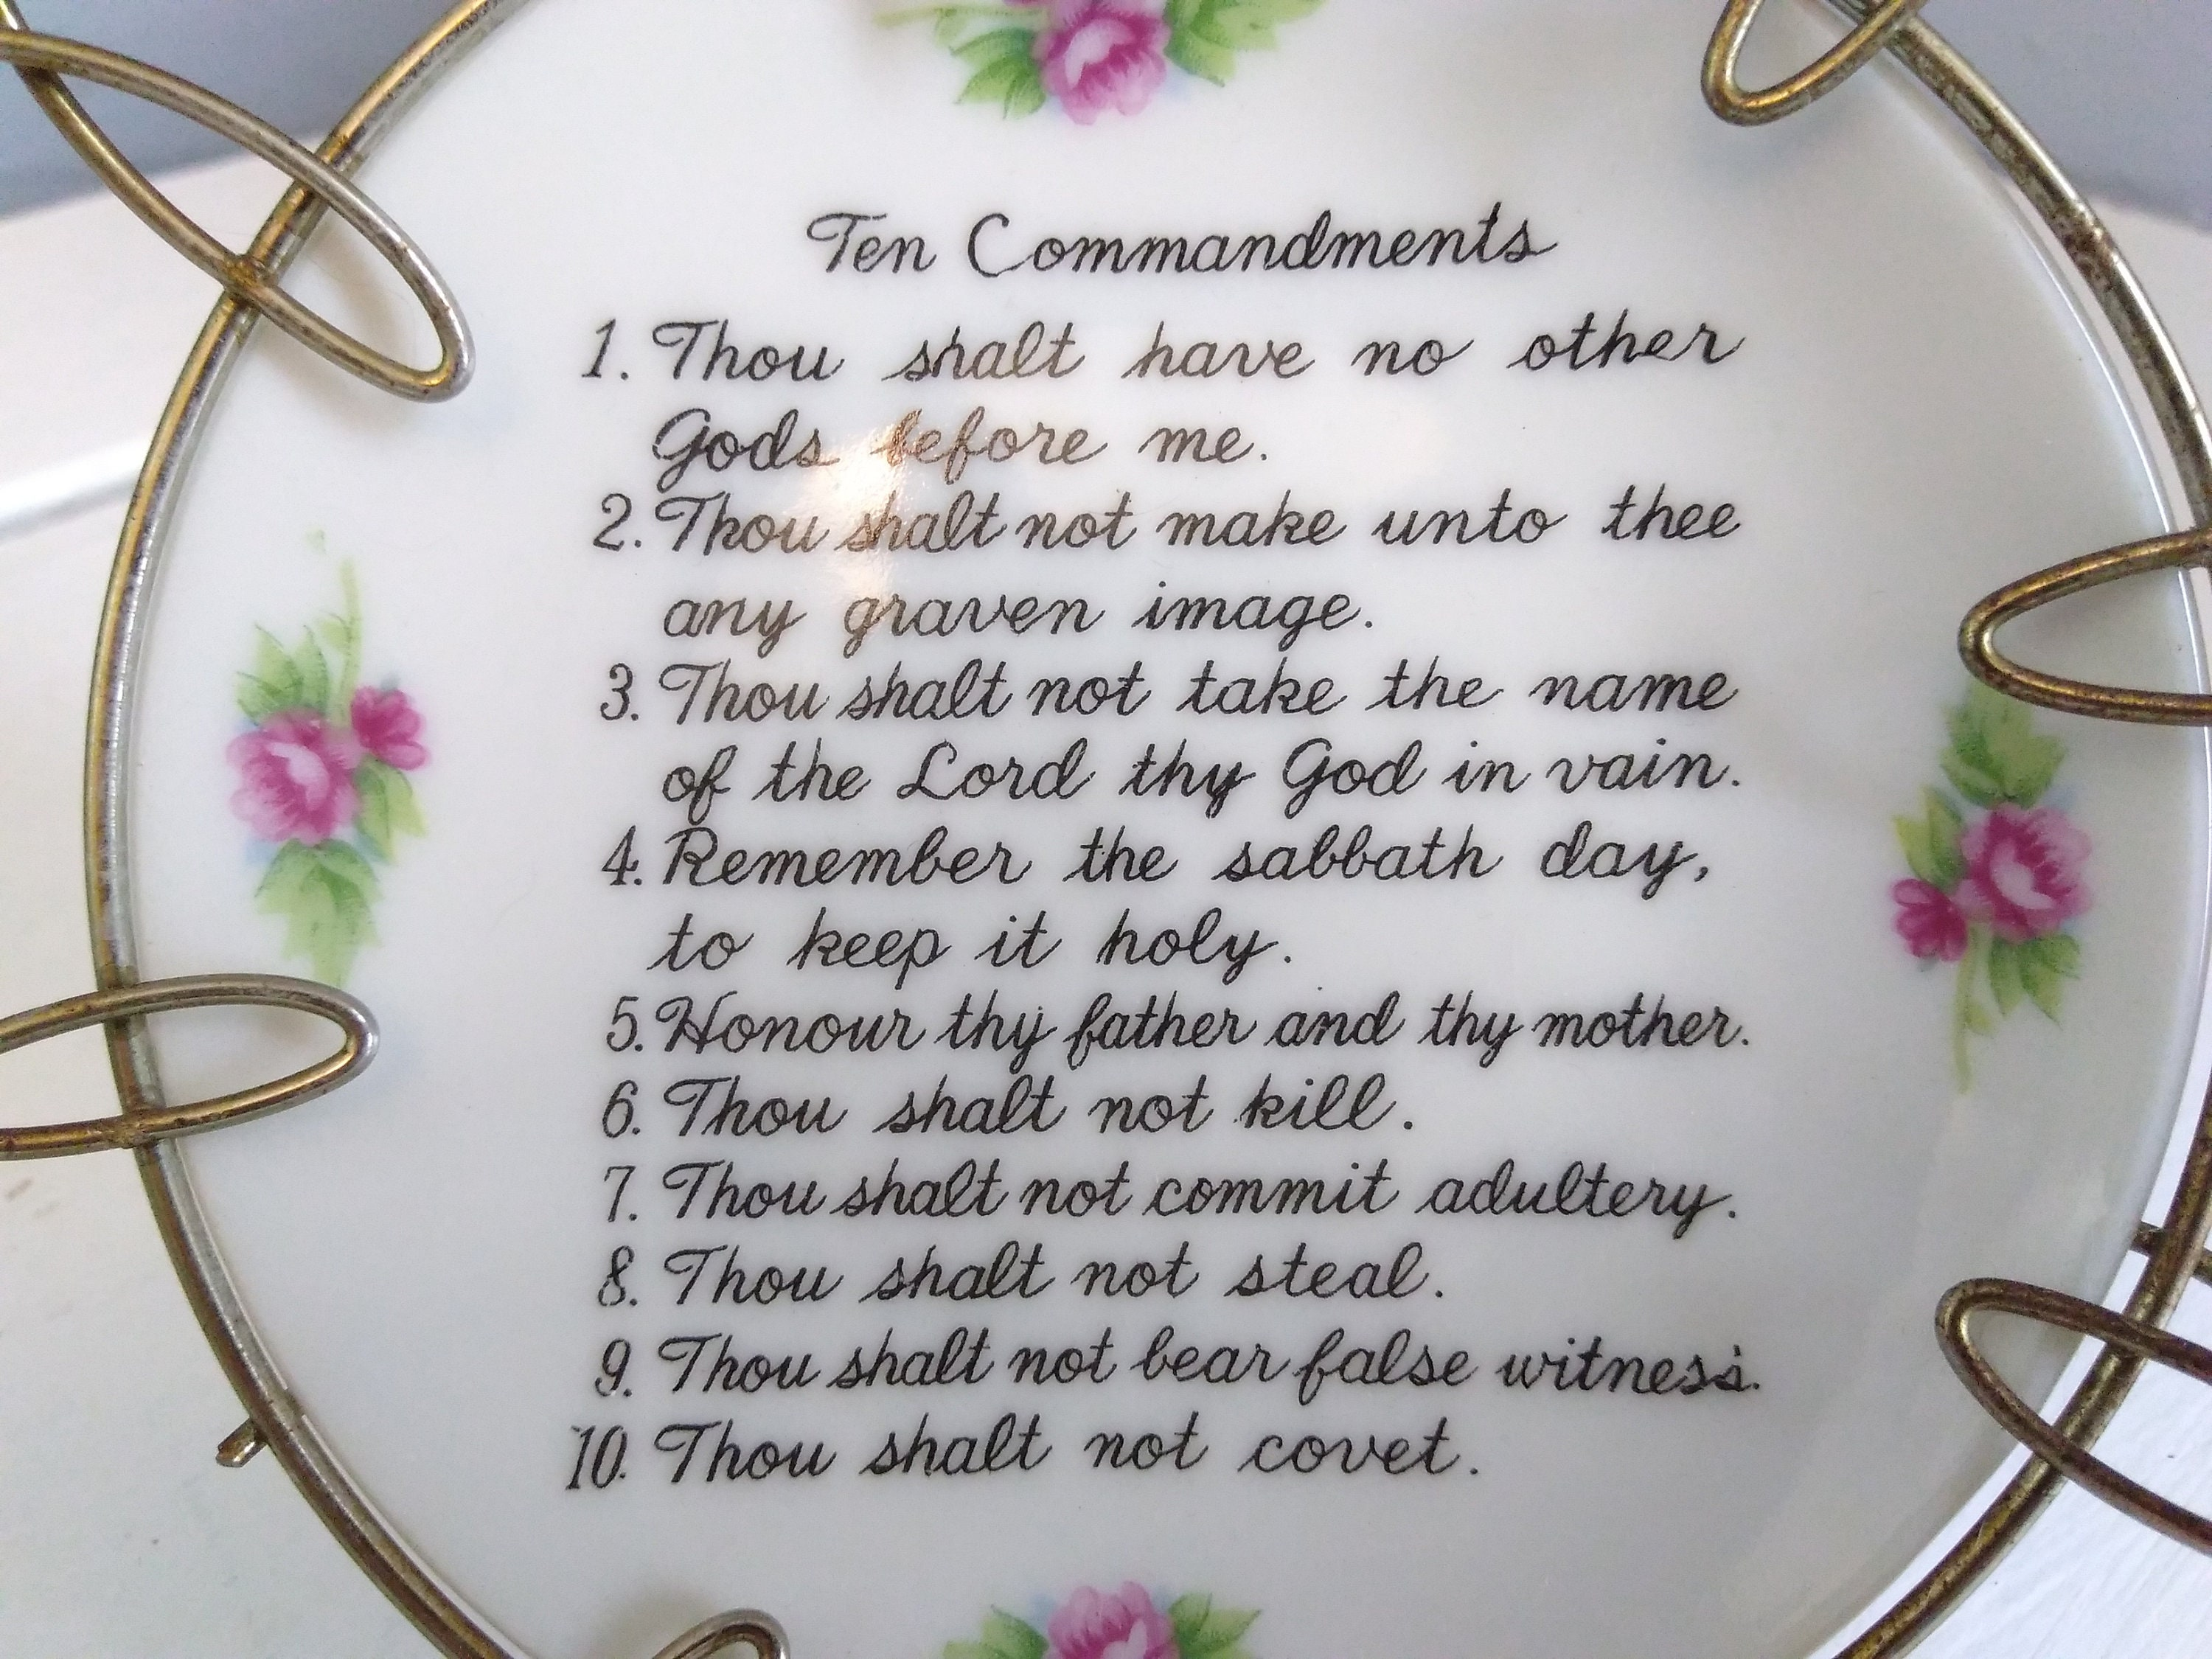 Vintage Ten Commandments Decorative Plate Framed In A Metal Looped